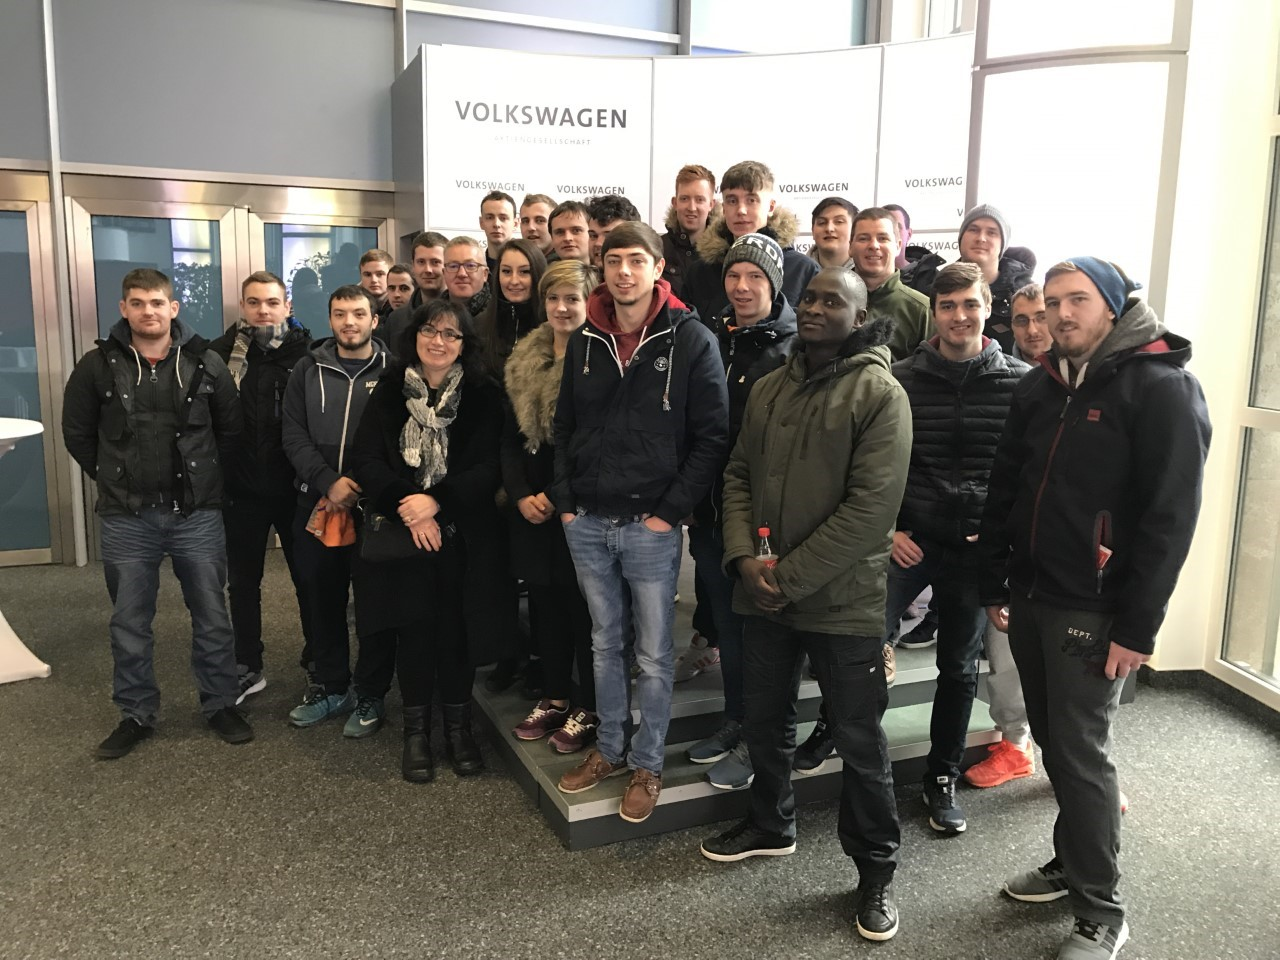 Staff and students from the BEng (Hons) in Mechanical & manufacturing Engineering course at WIT